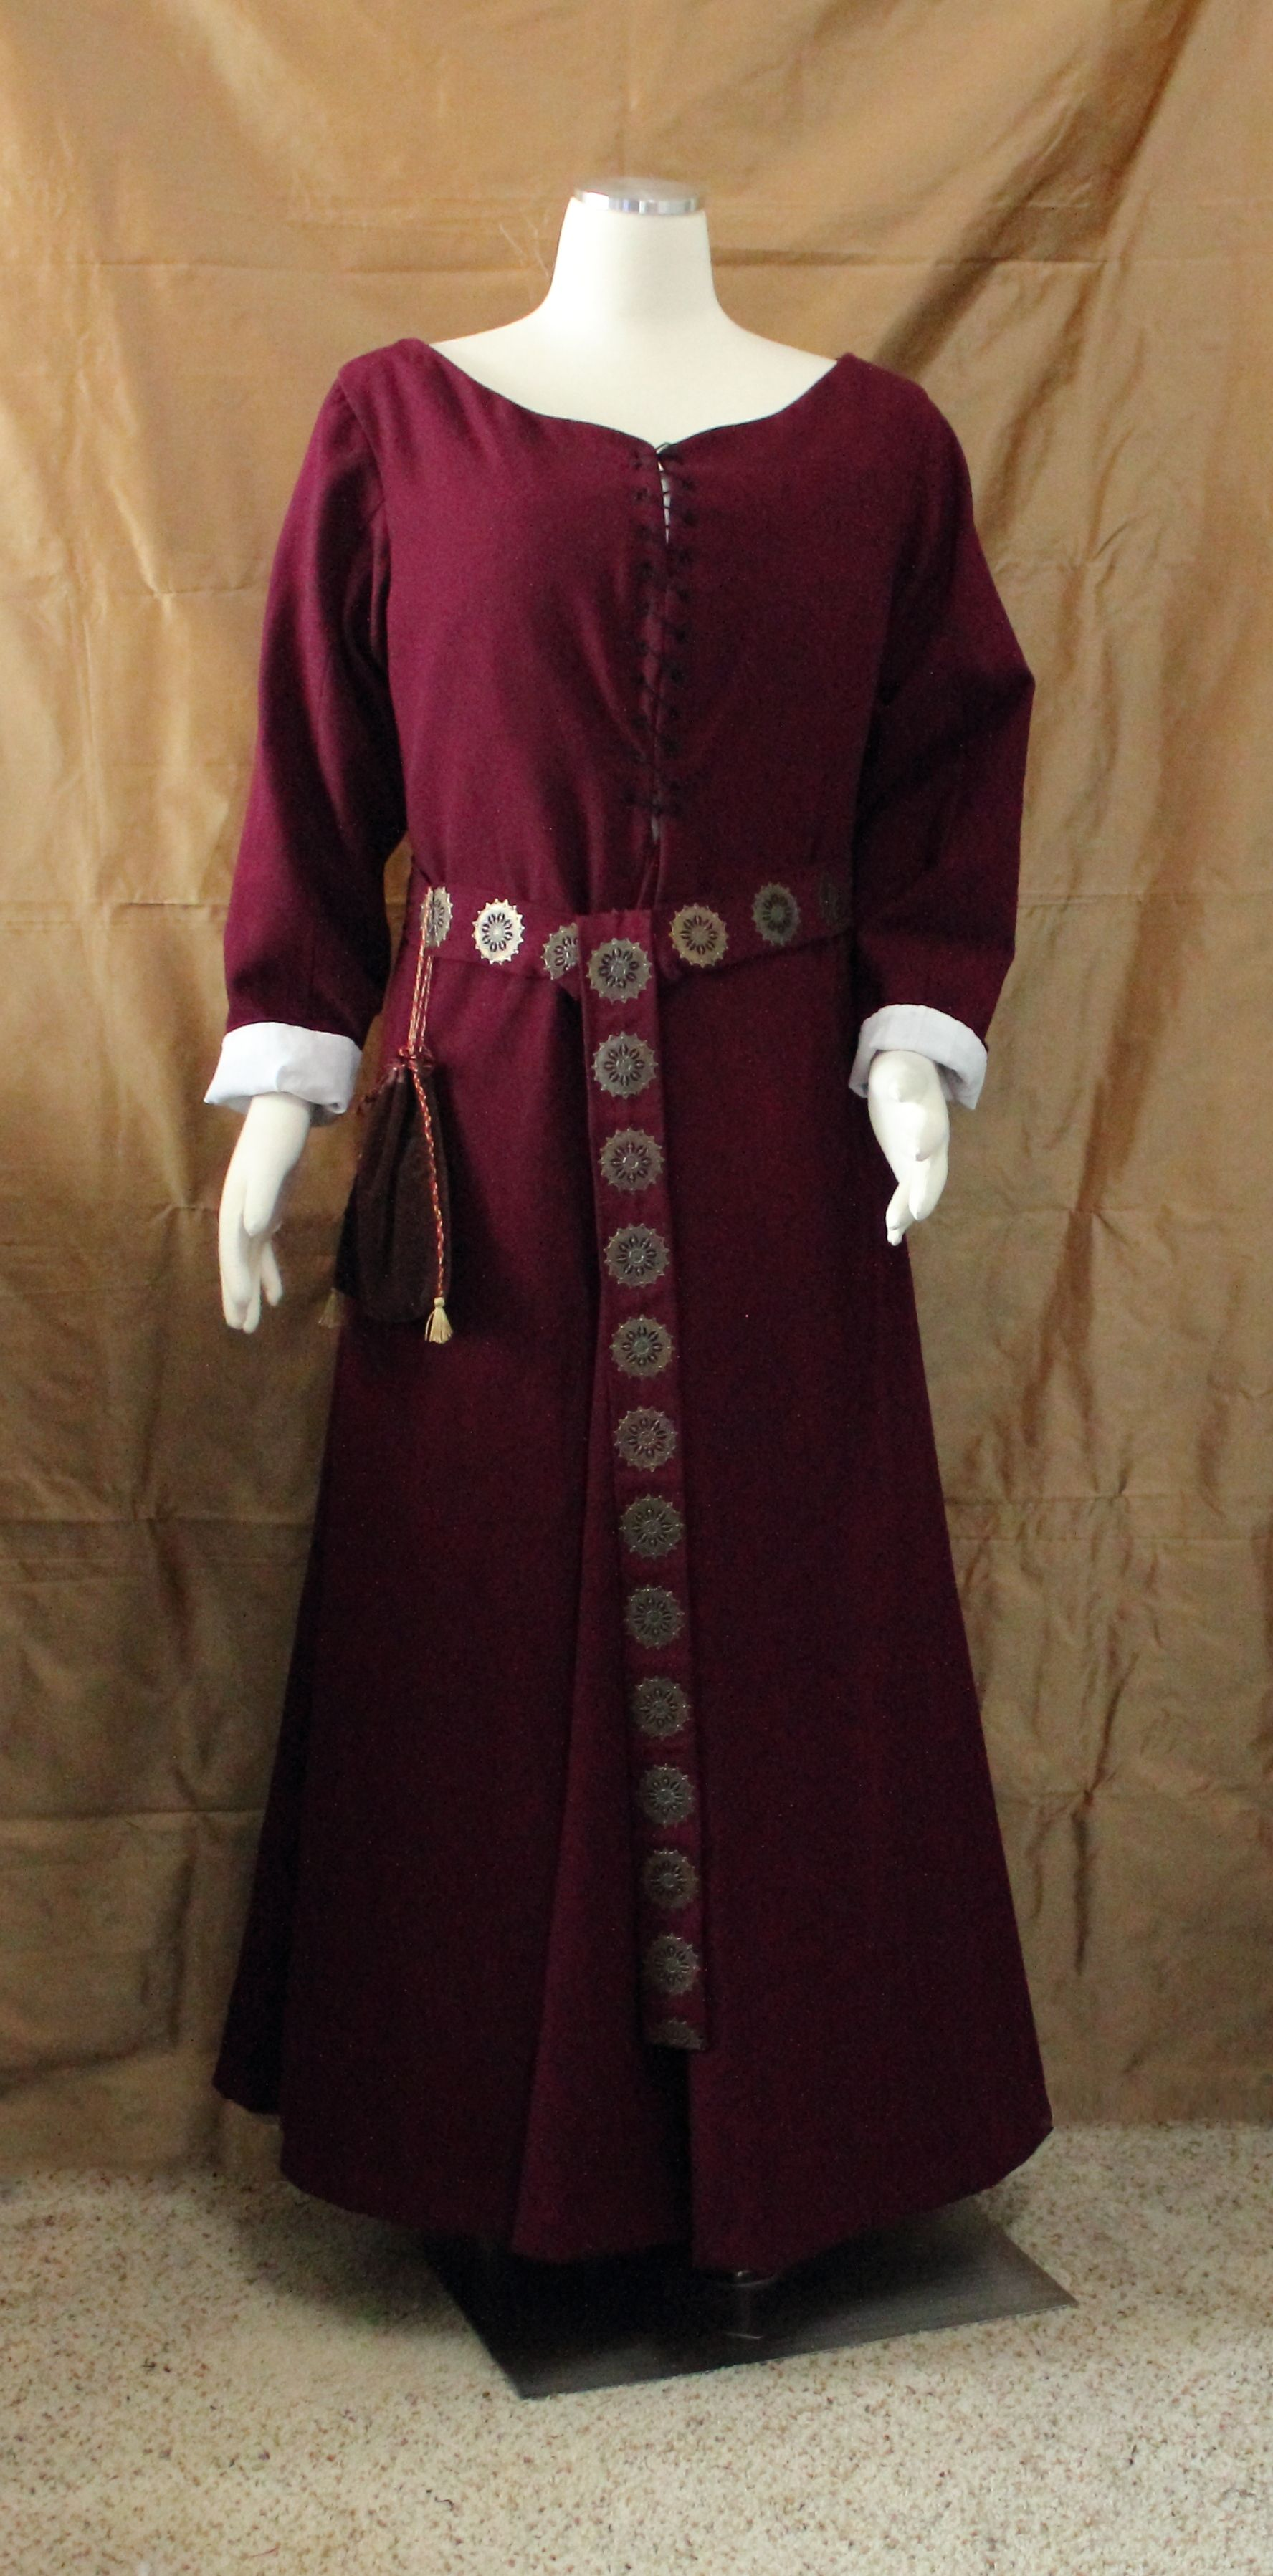 14th century kirtle or fantasy gown depending on the accessories.